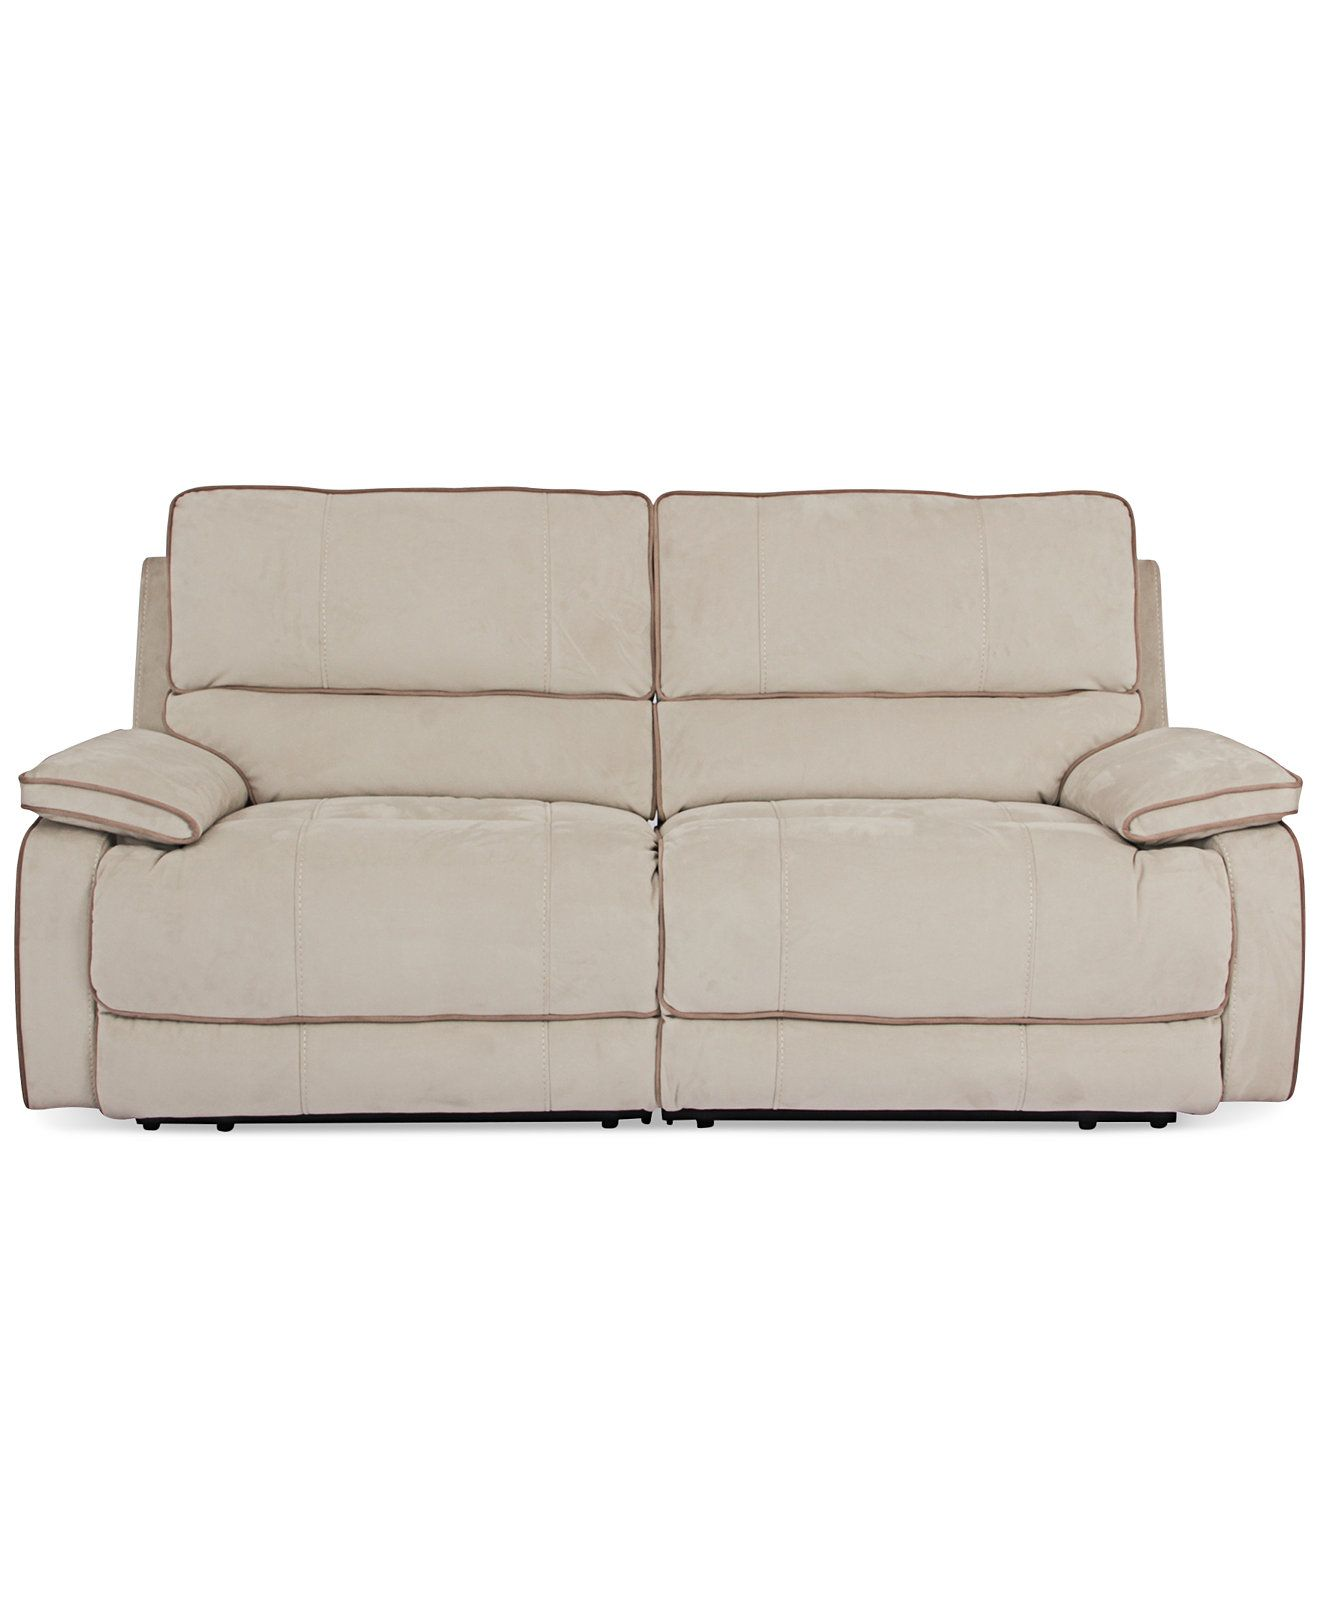 Cody Fabric 2 Piece Sectional Sofa with 2 Power Recliners